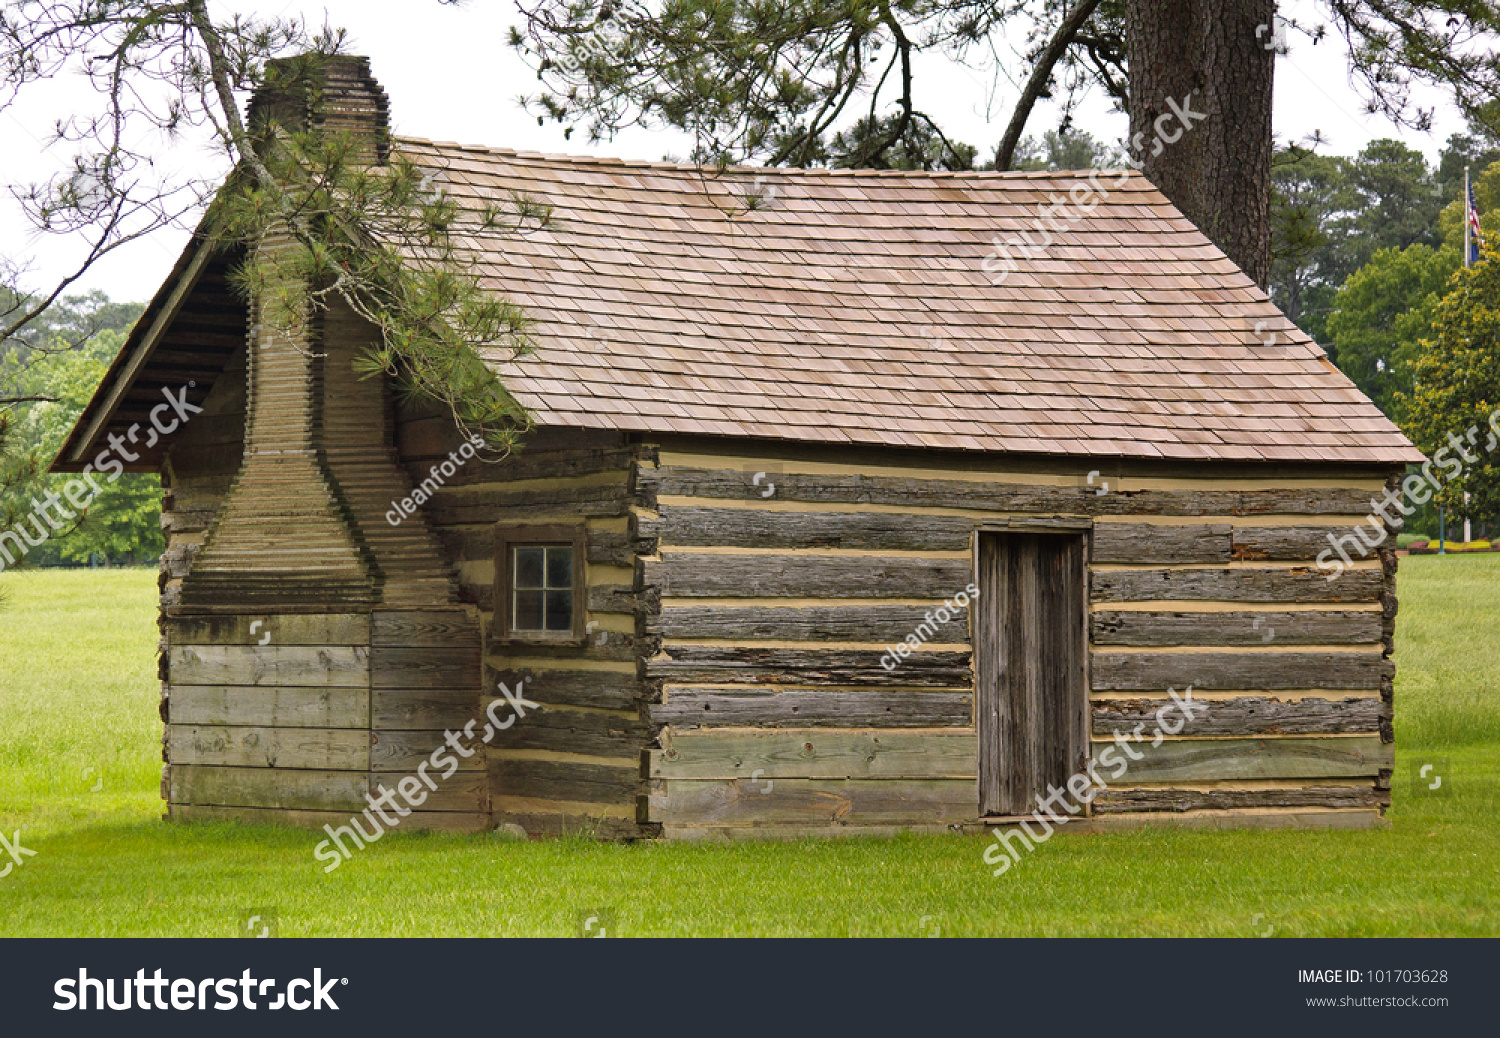 Classic one room schoolhouse log cabin stock photo for Single room log cabin